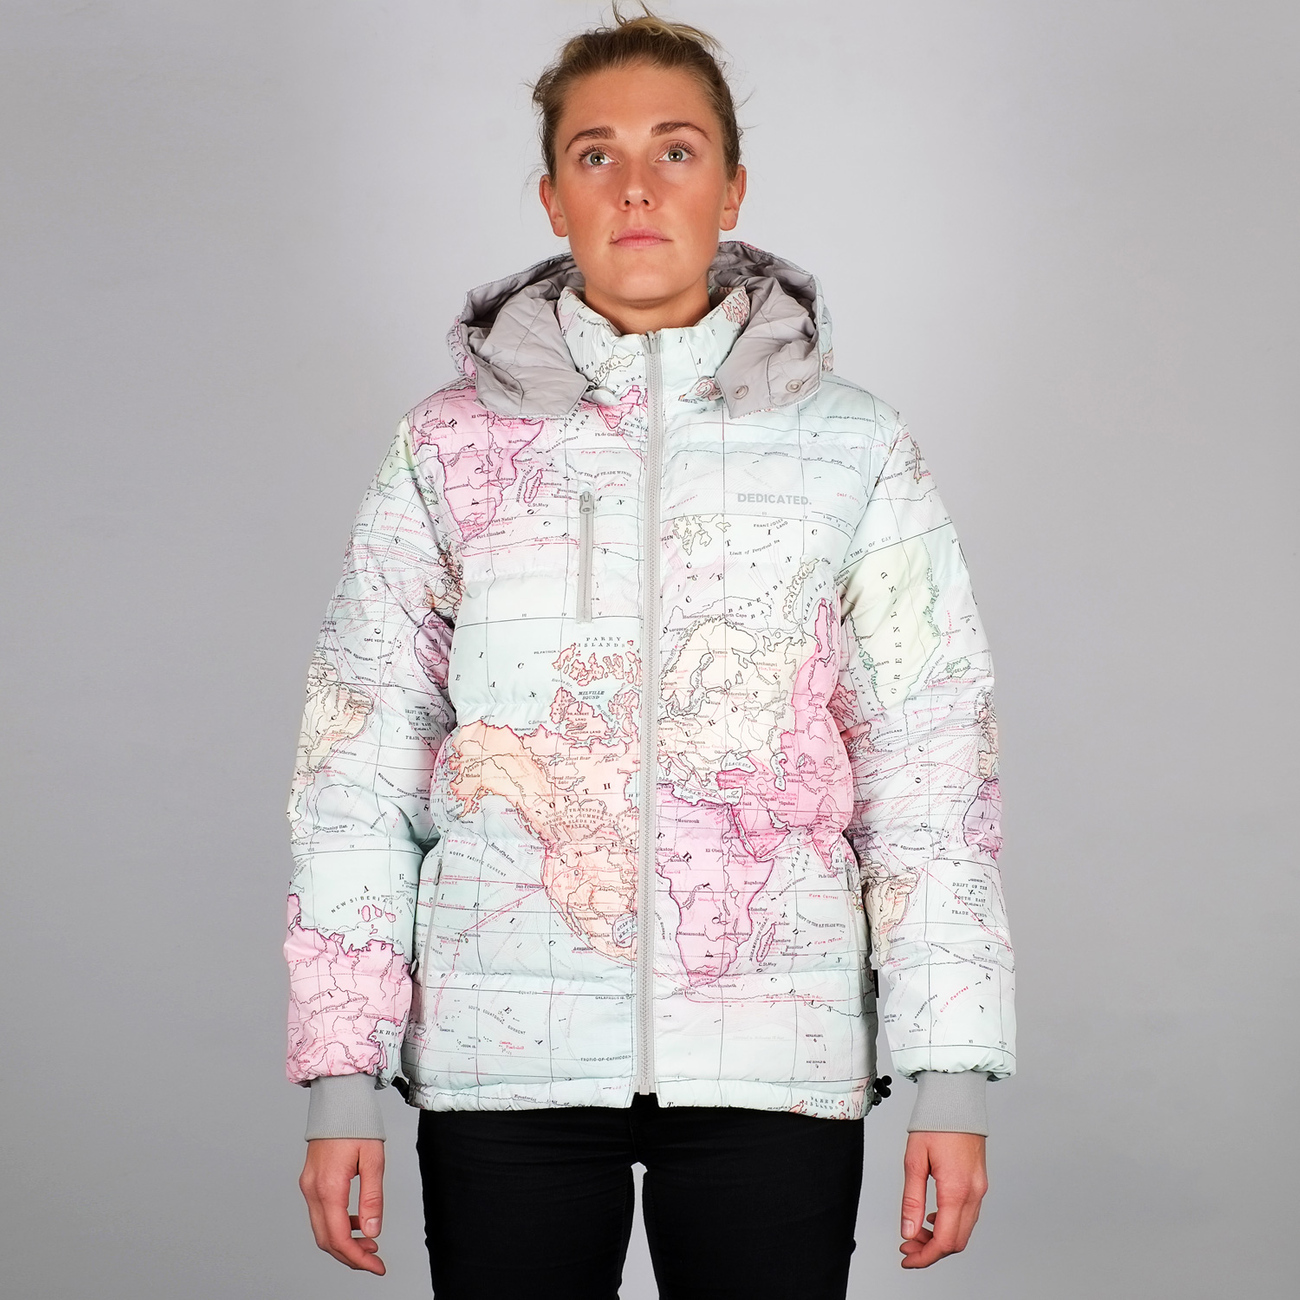 DEDICATED - Puffer Jacket Boden Map in Multi Color - Tshirt ...